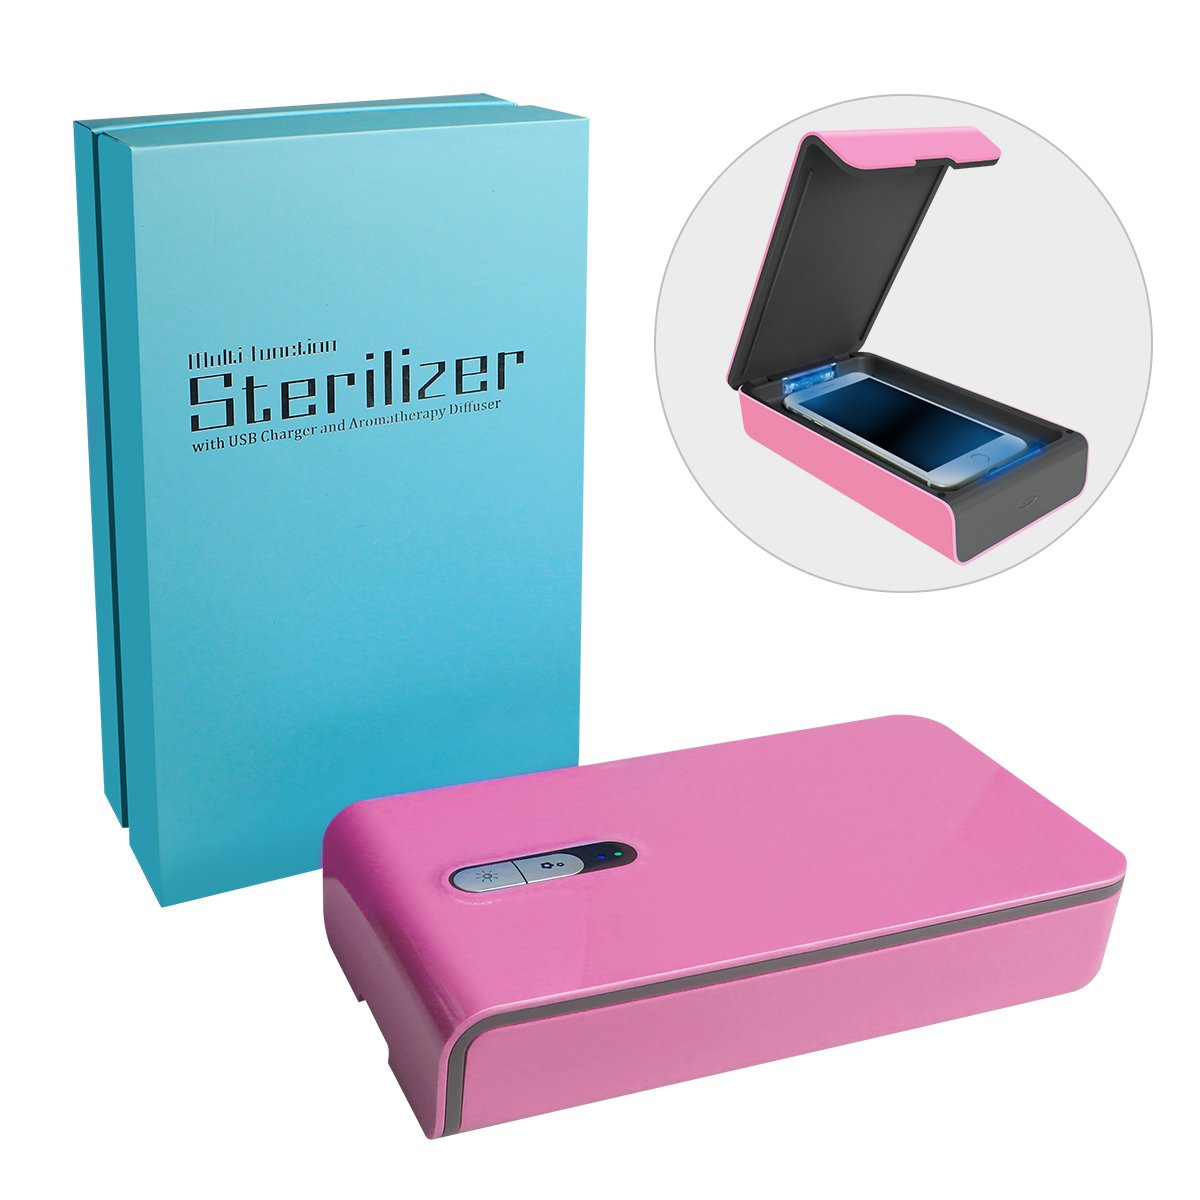 Aneforall Smart Phone UV Sanitizer Portable UV Light Cell Phone Sterilizer Cleaner Aromatherapy Function Disinfector with USB Charging for iPhone Android Smart Phone Toothbrush Jewelry Watches-Pink by Aneforall